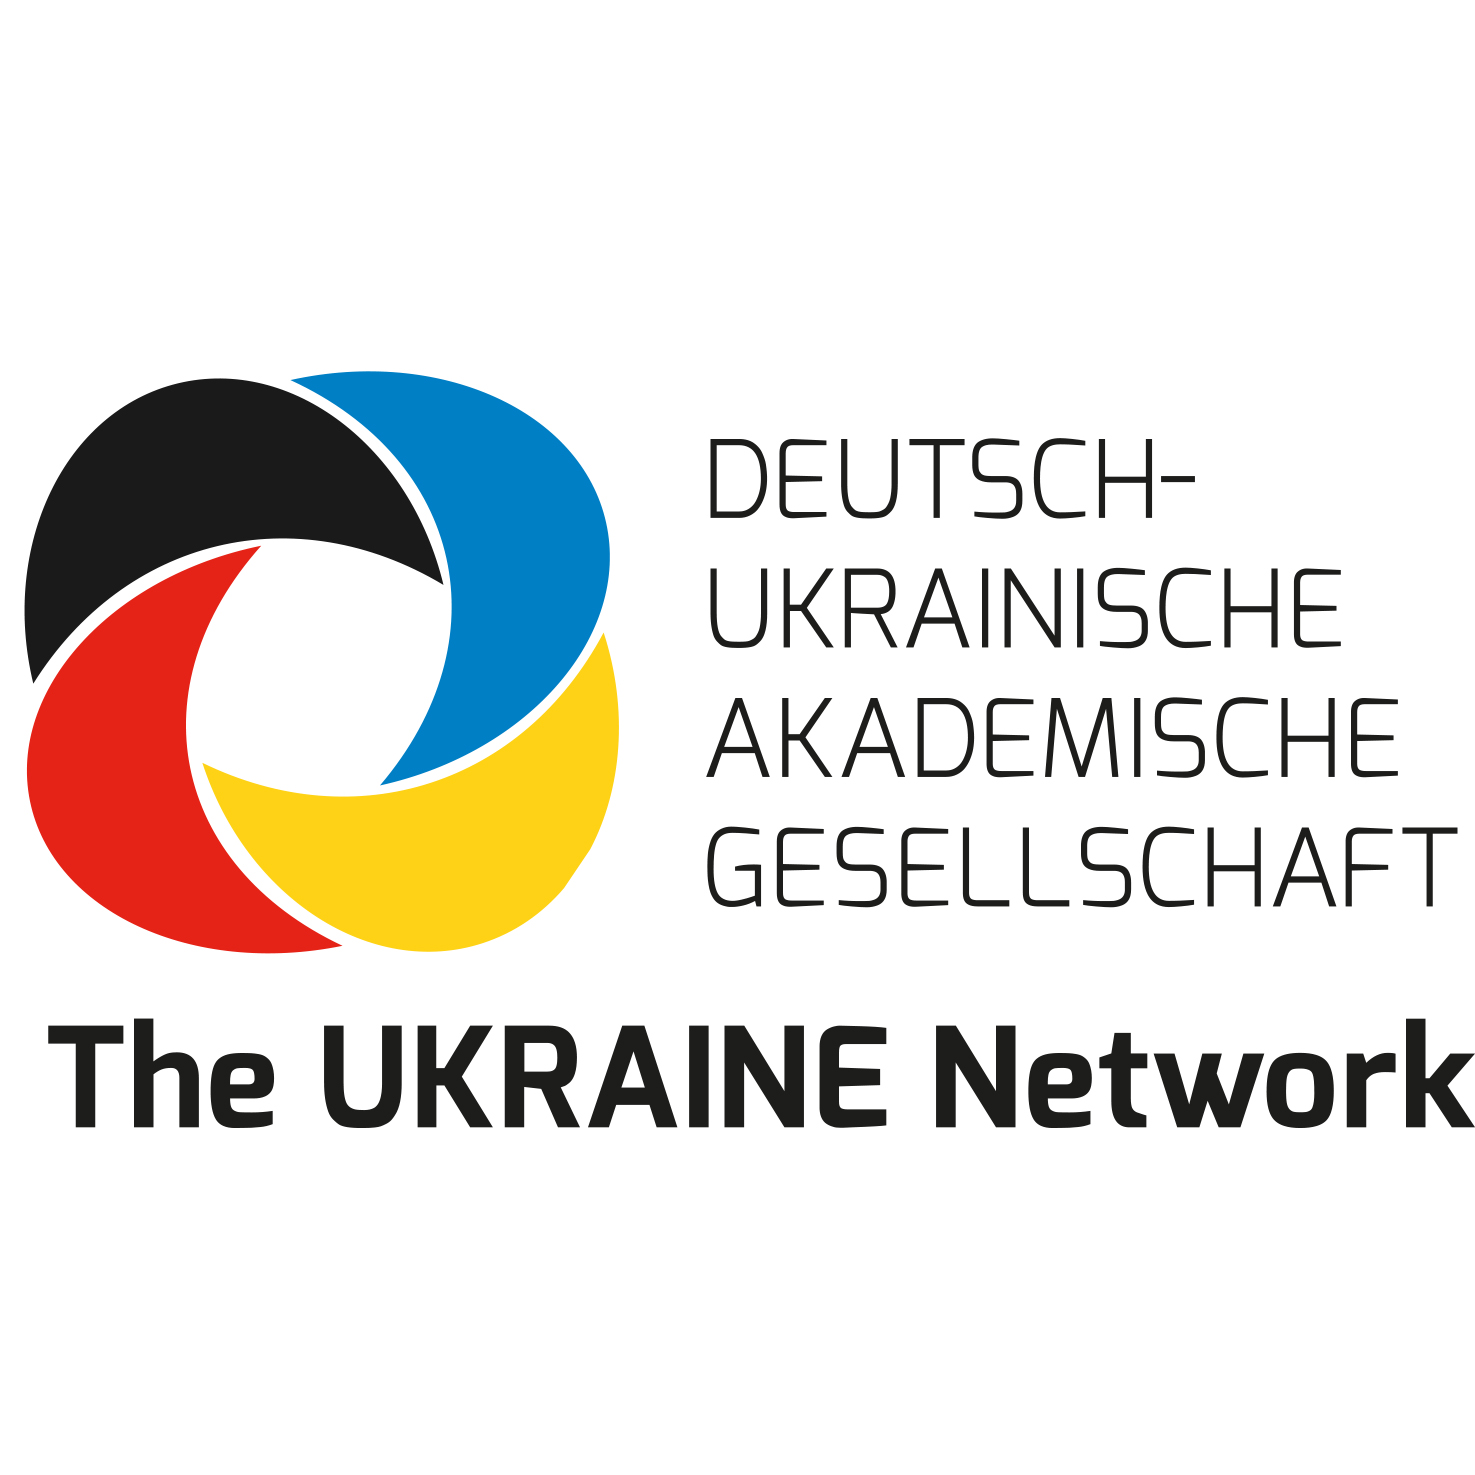 The UKRainian Academic International NEtwork